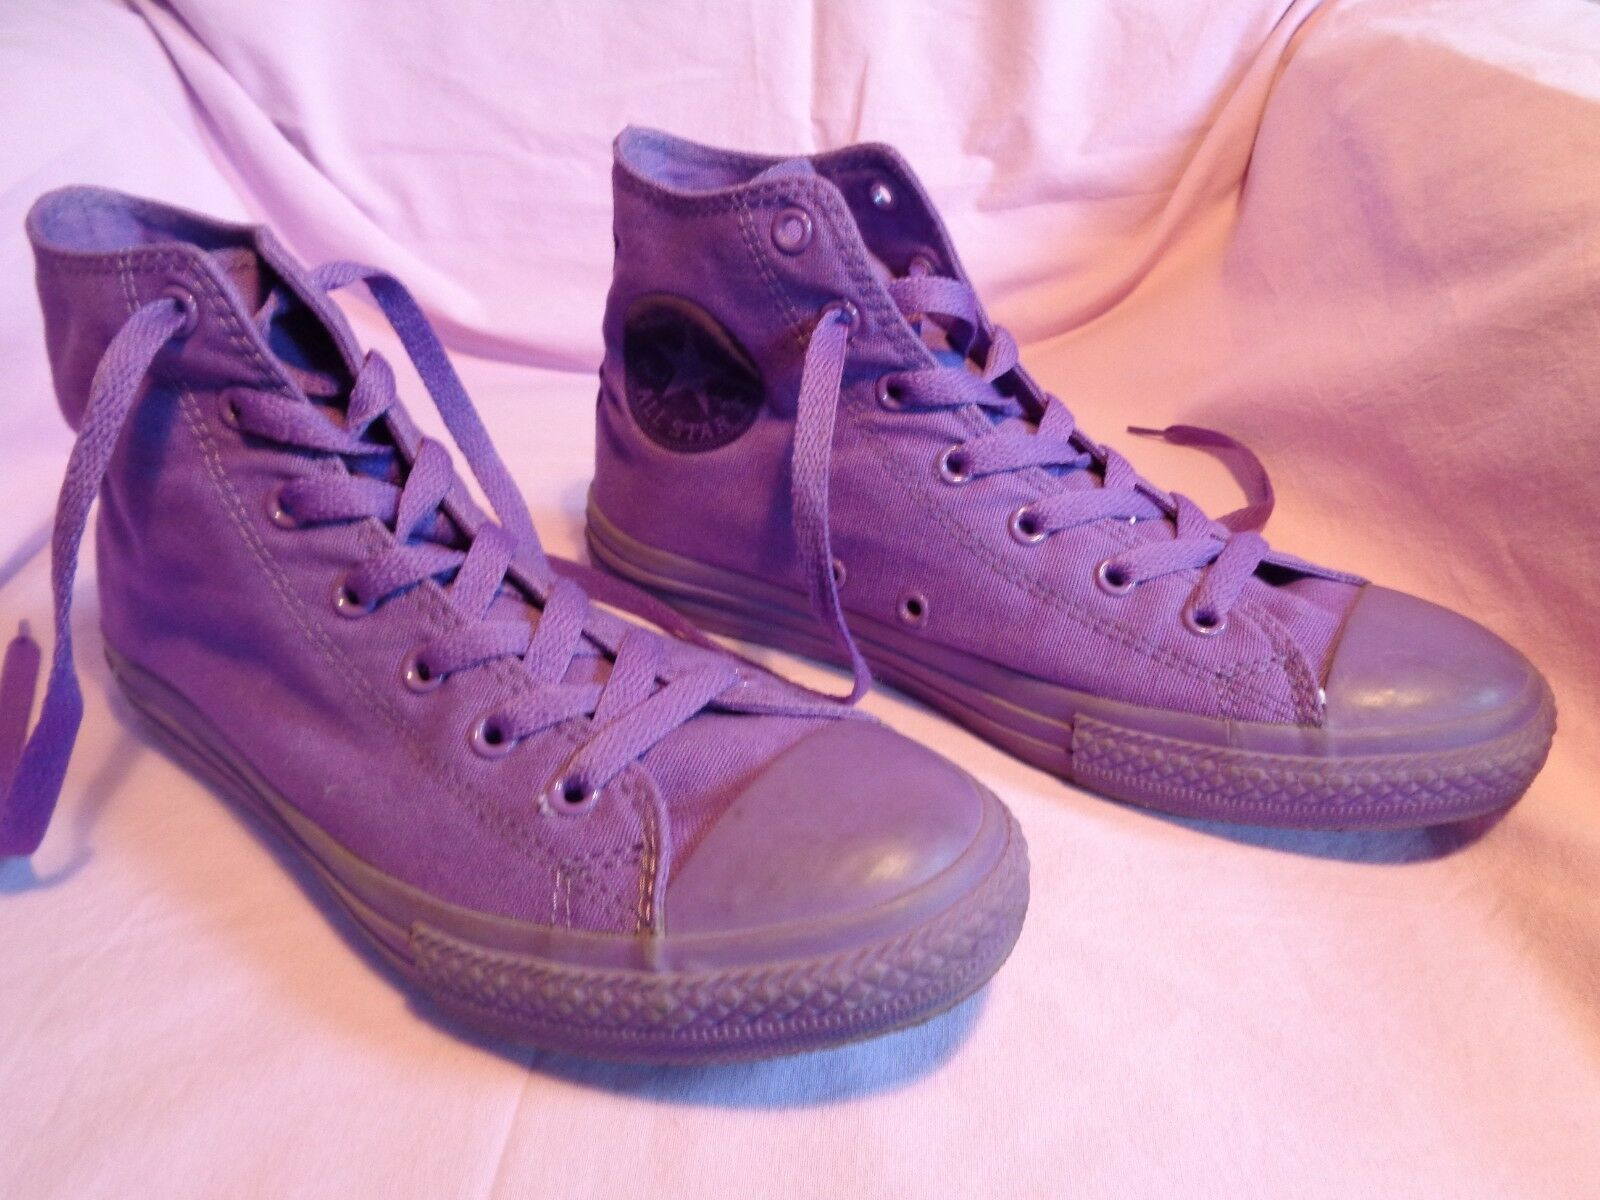 Converse All Star toile lila unisex violet taille 37½ réf.39 unisex lila 0d53ae